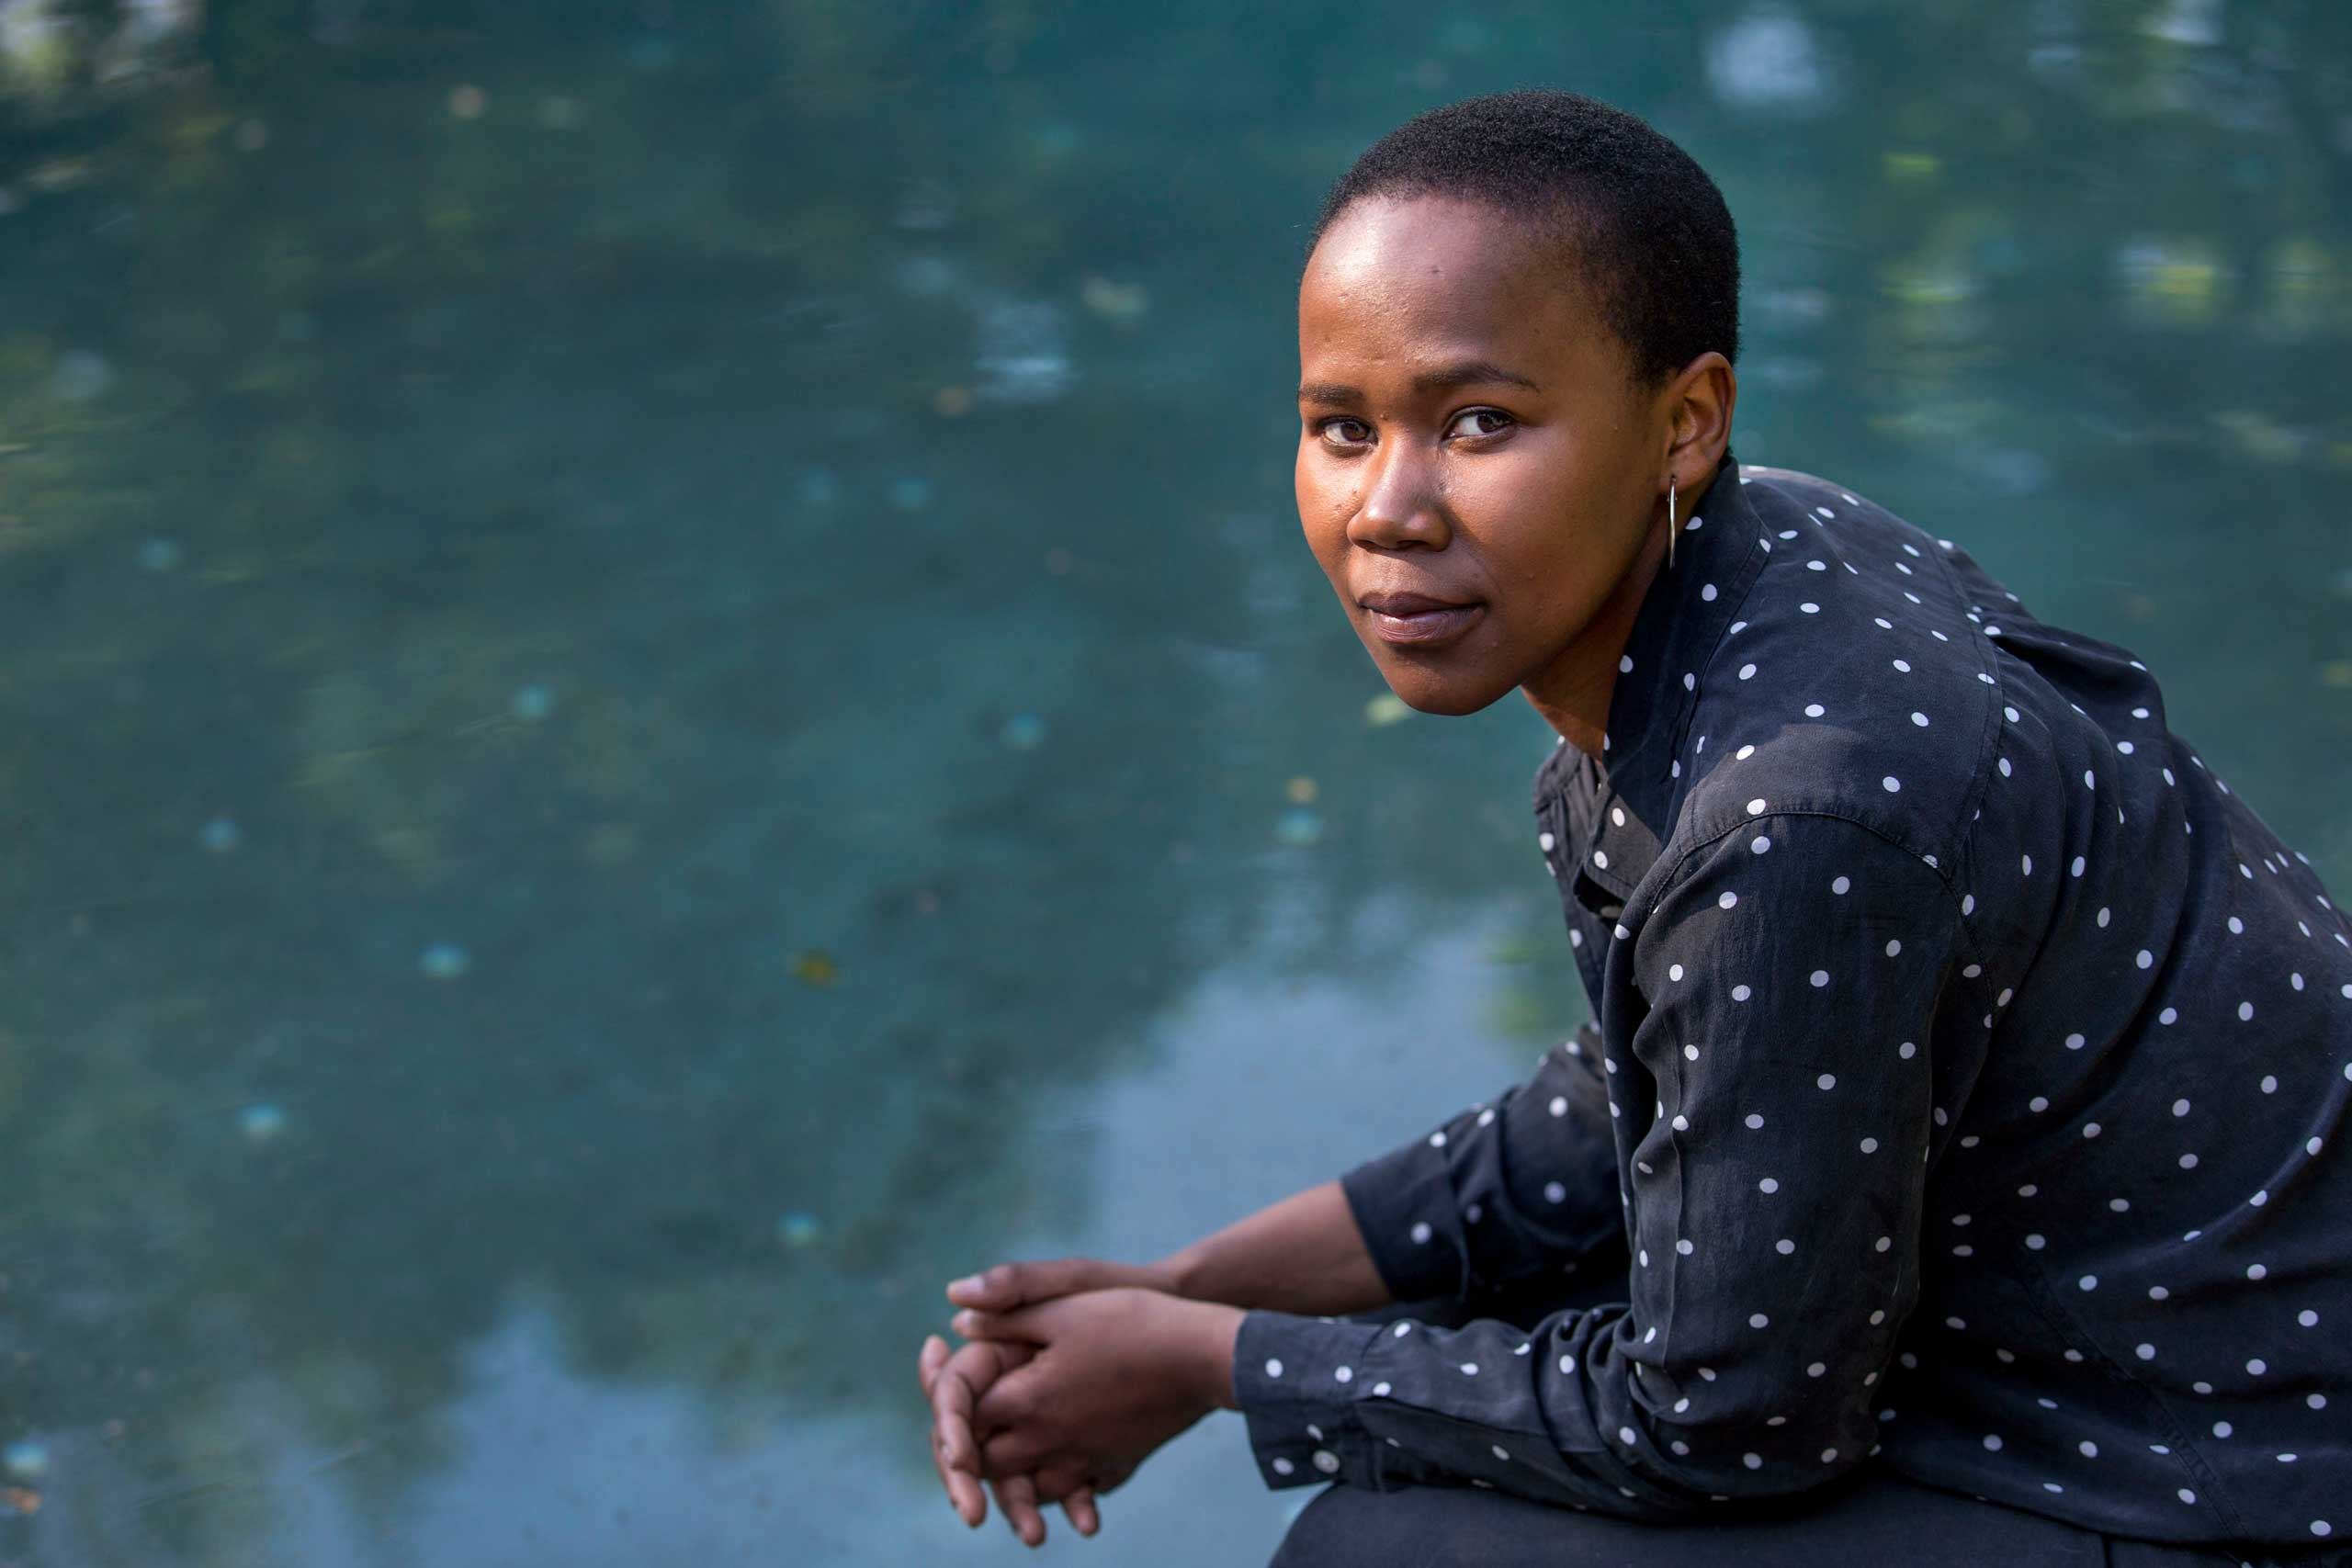 Phindile Sithole-Spong, HIV visionary, writer, and activist, at her home in Johannesburg, South Africa.